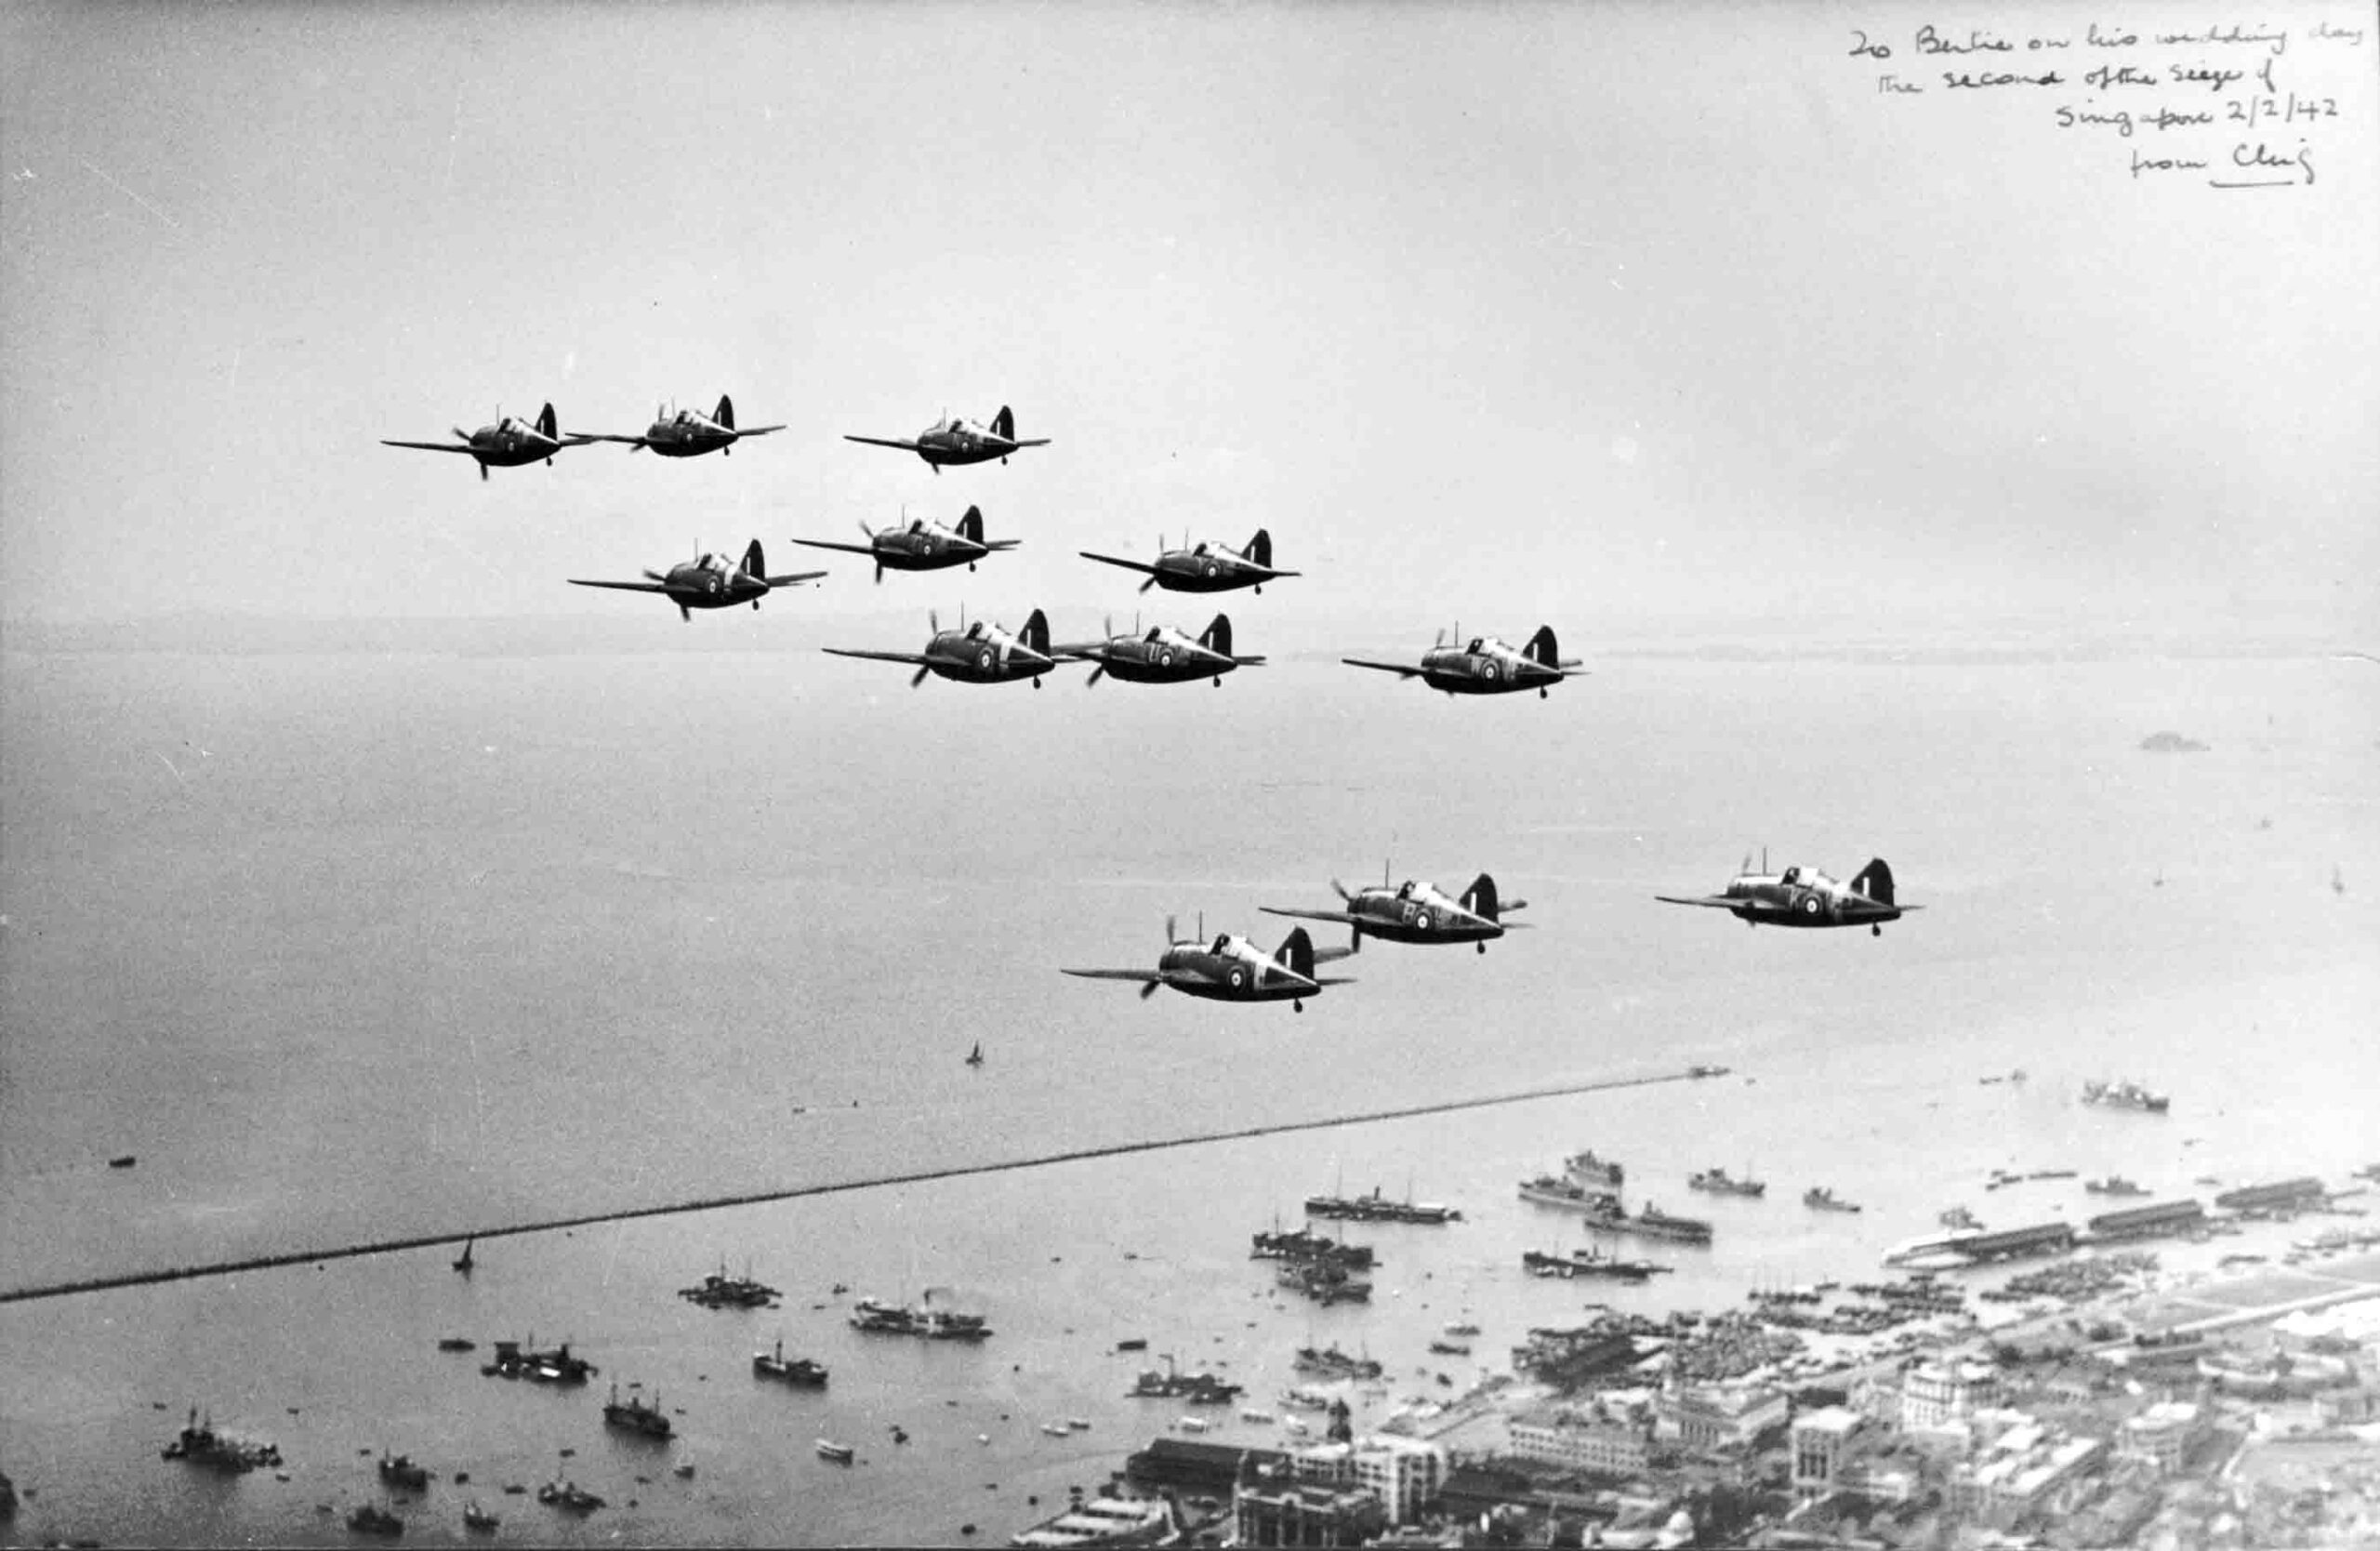 P007759 Brewster Buffalo's Mk. IIs of No. 243 Squadron, flying over Singapore, 2 February 1942